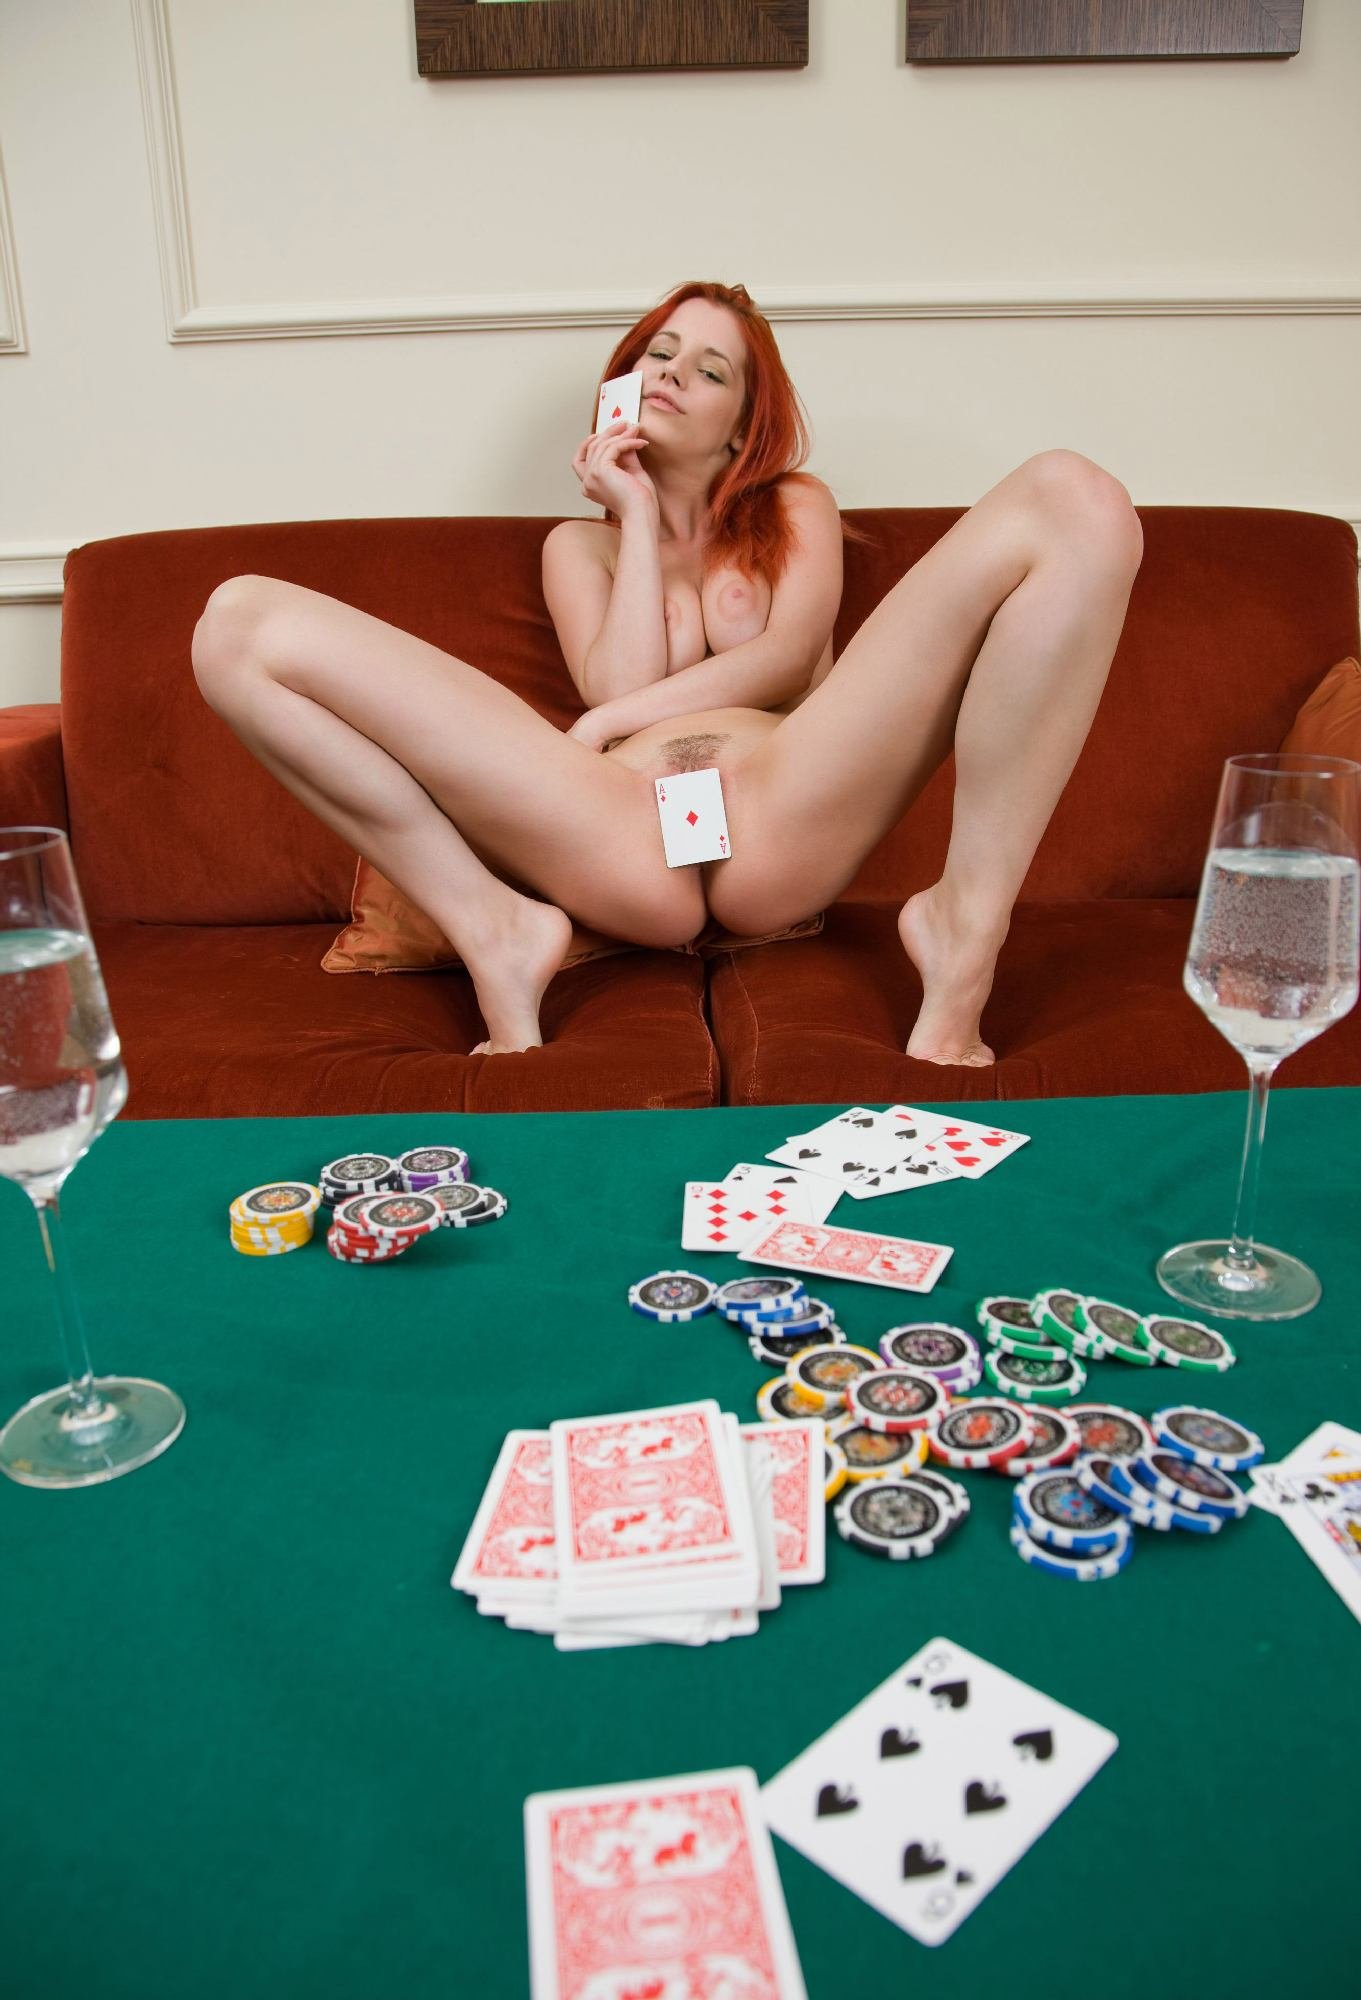 naked-women-playing-poker-how-to-give-oral-sex-to-a-male